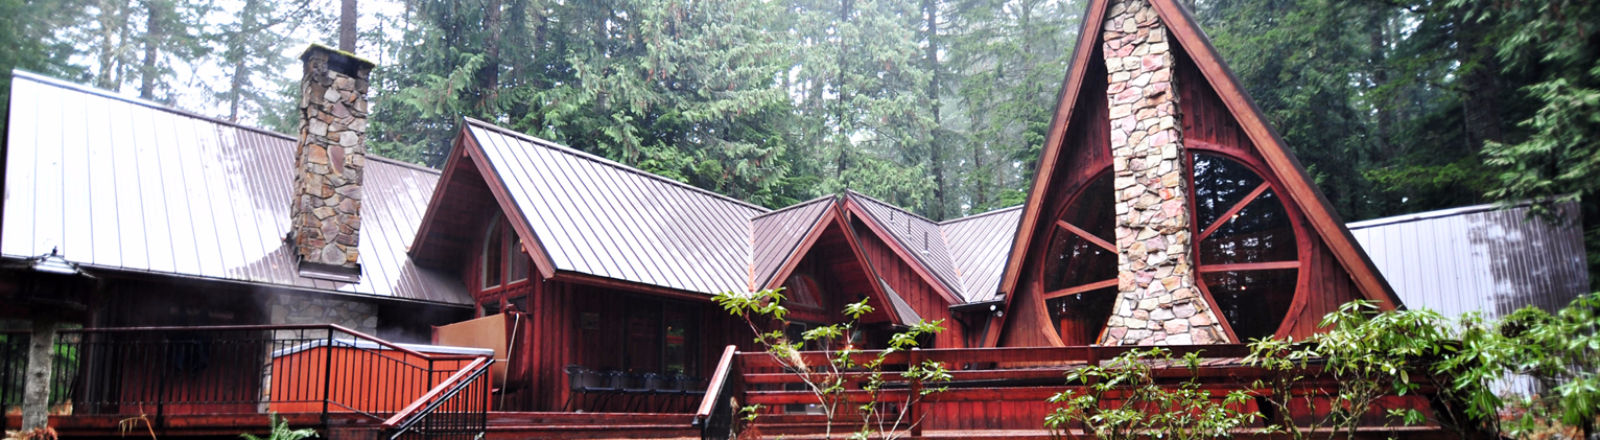 pin bend luxurious central or rental vrbo vacation oregon cabin cabins in rentals br